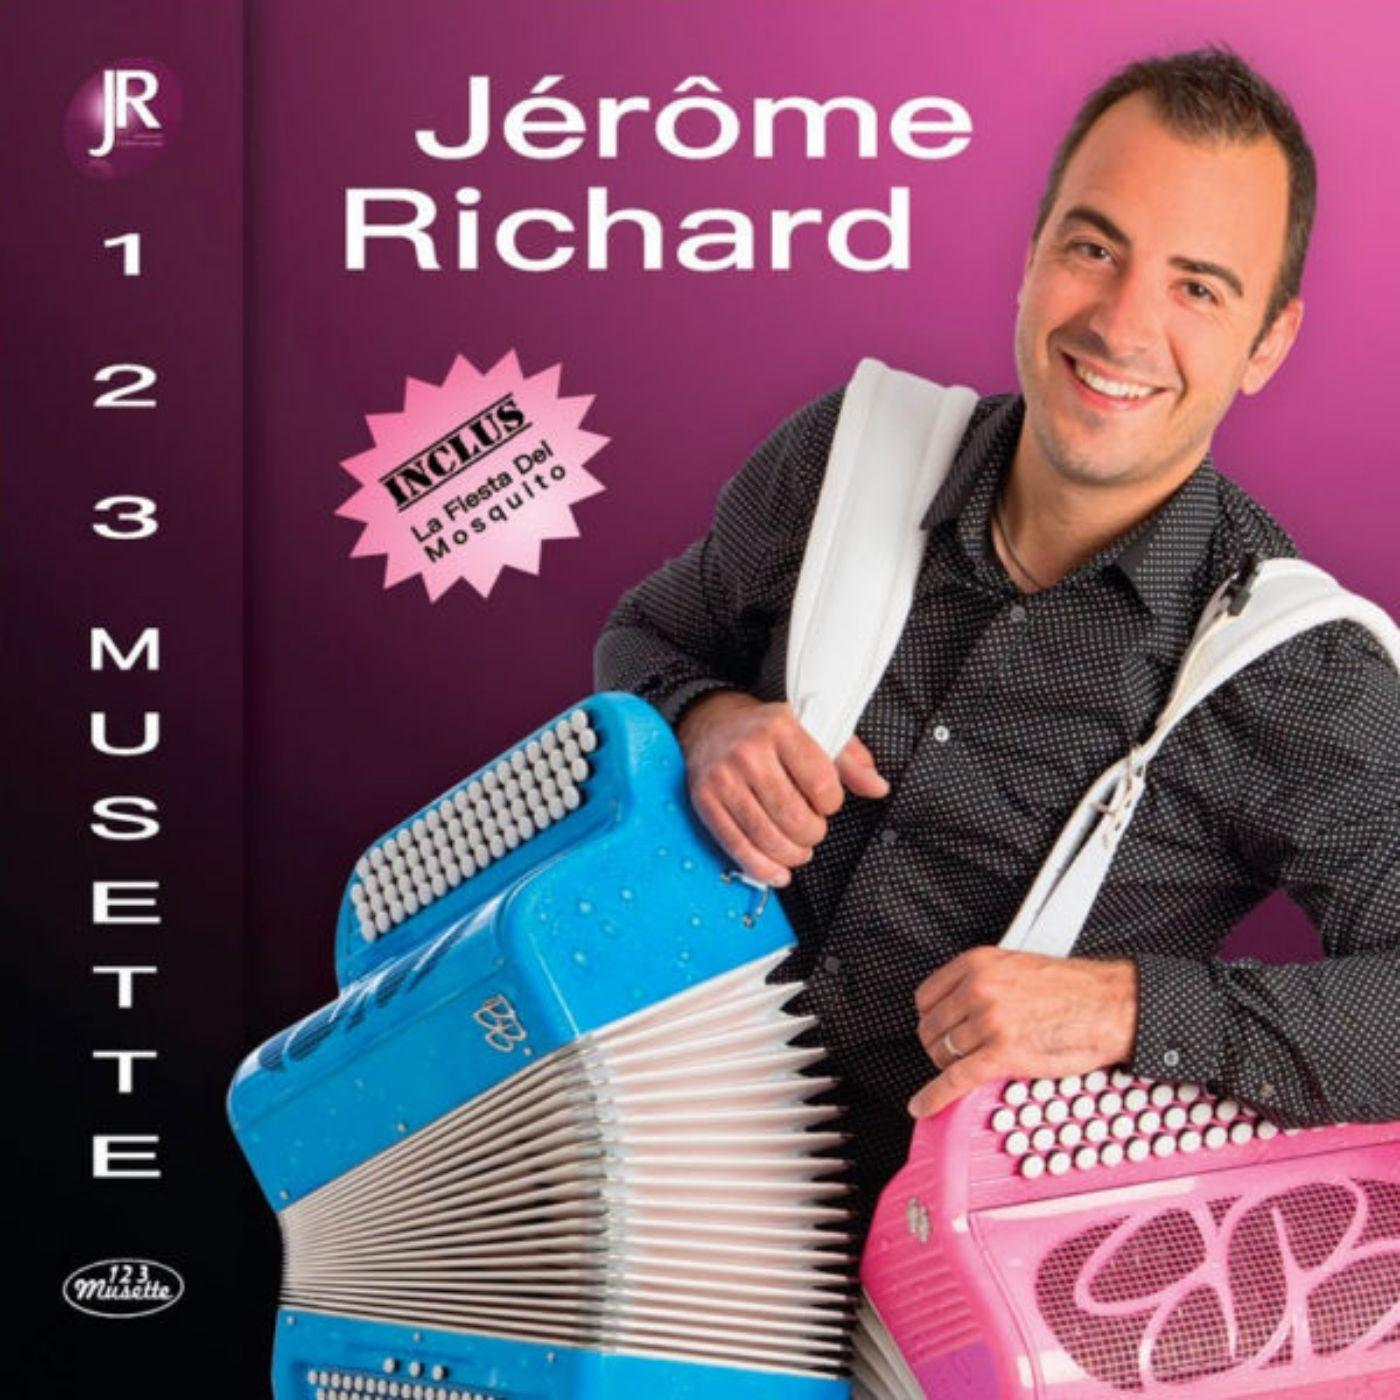 Cd jerome richard 123 musette